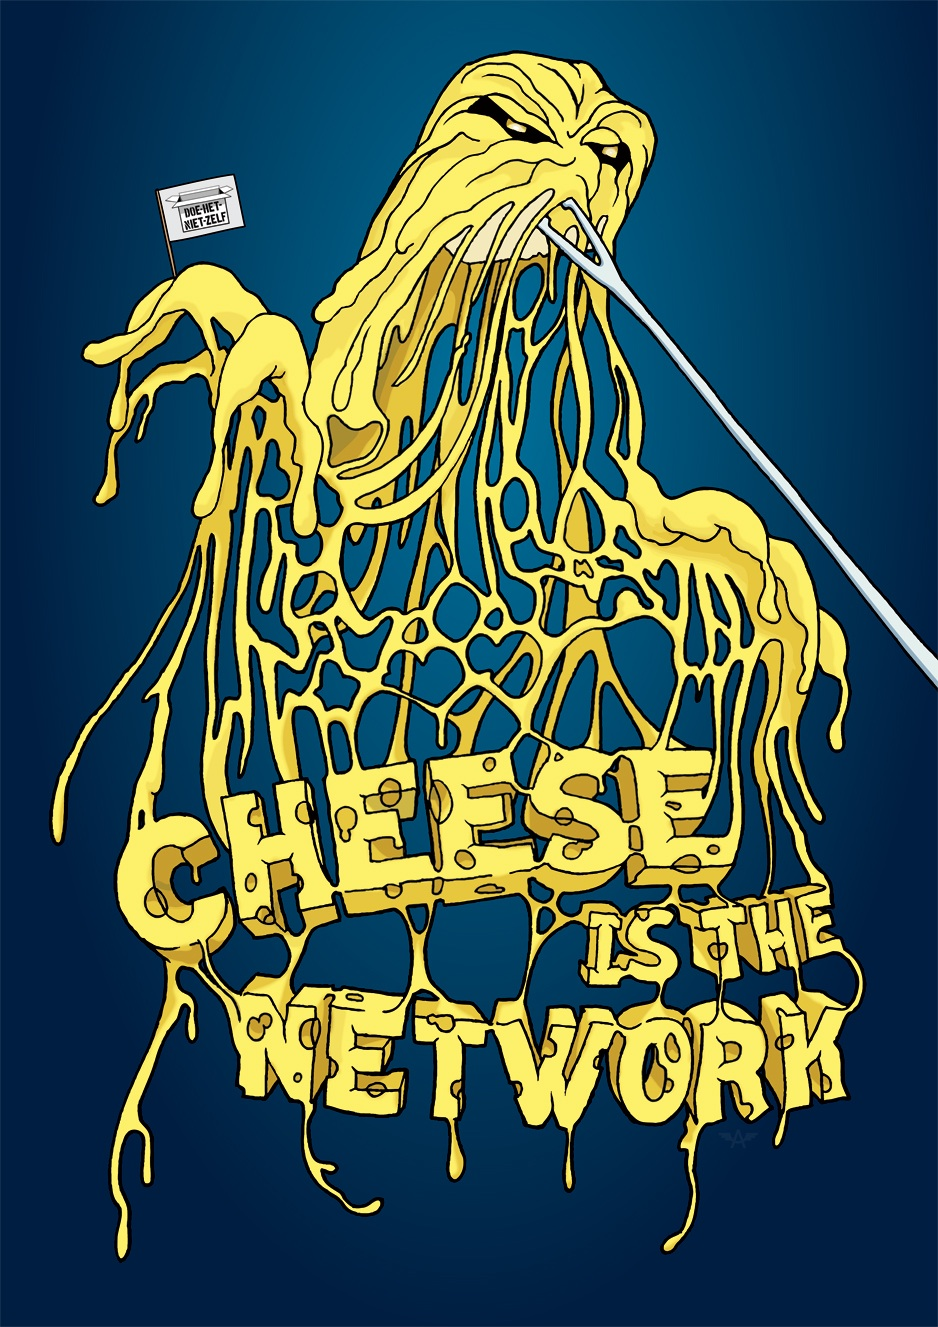 Cheese is network